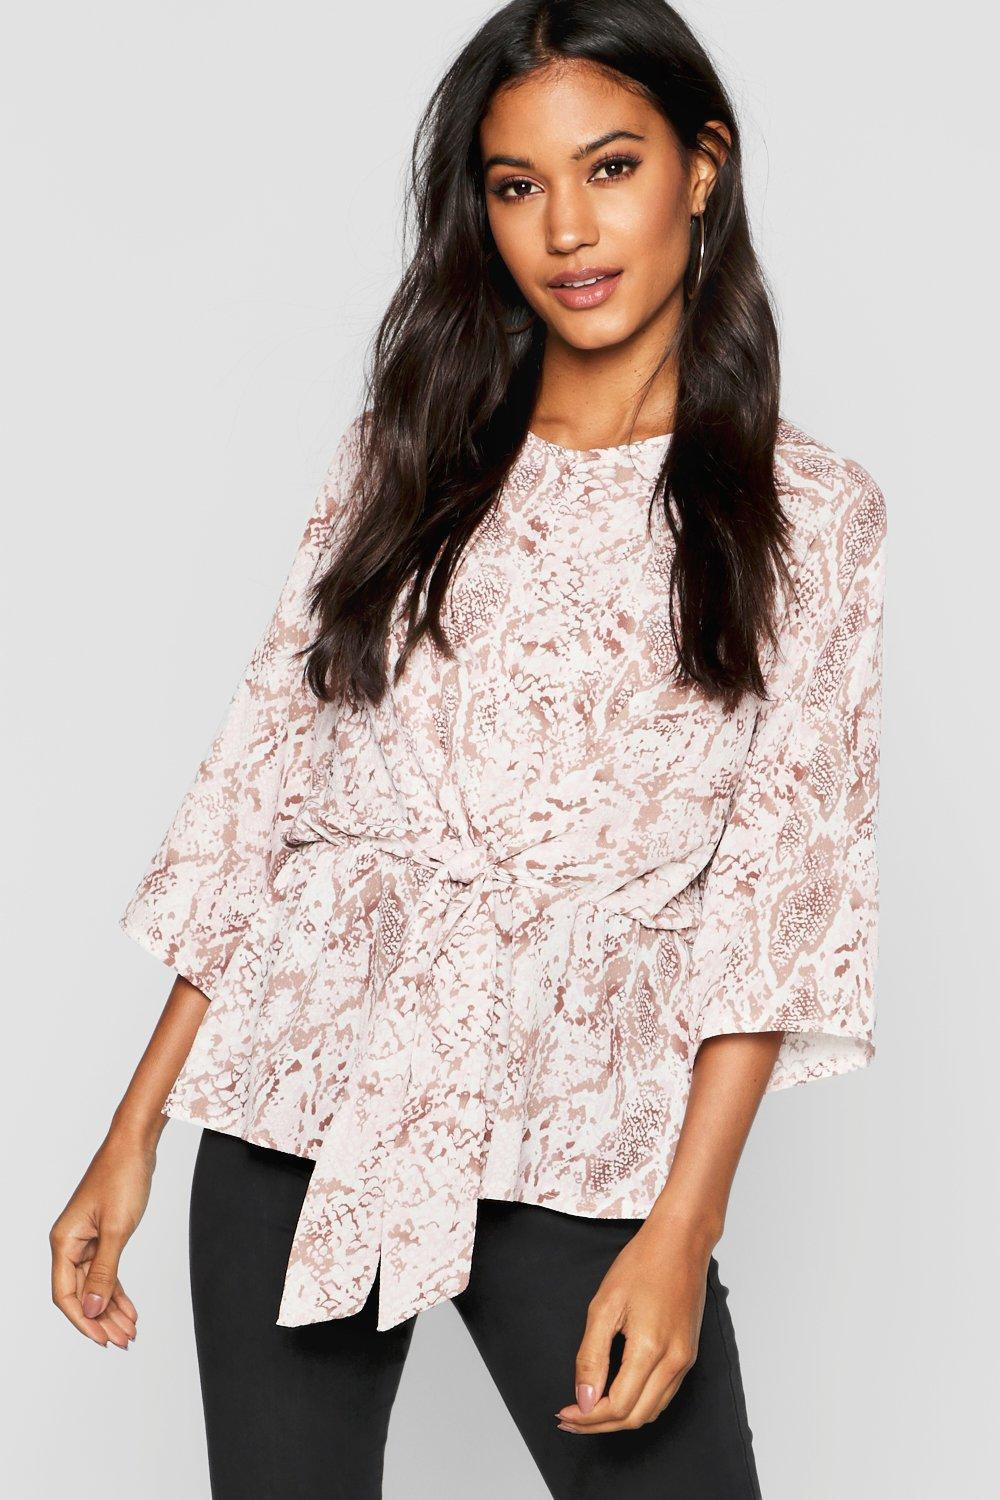 Womens Lockere Wickelbluse mit Schlangenmuster - rosa - 38, Rosa - Boohoo.com